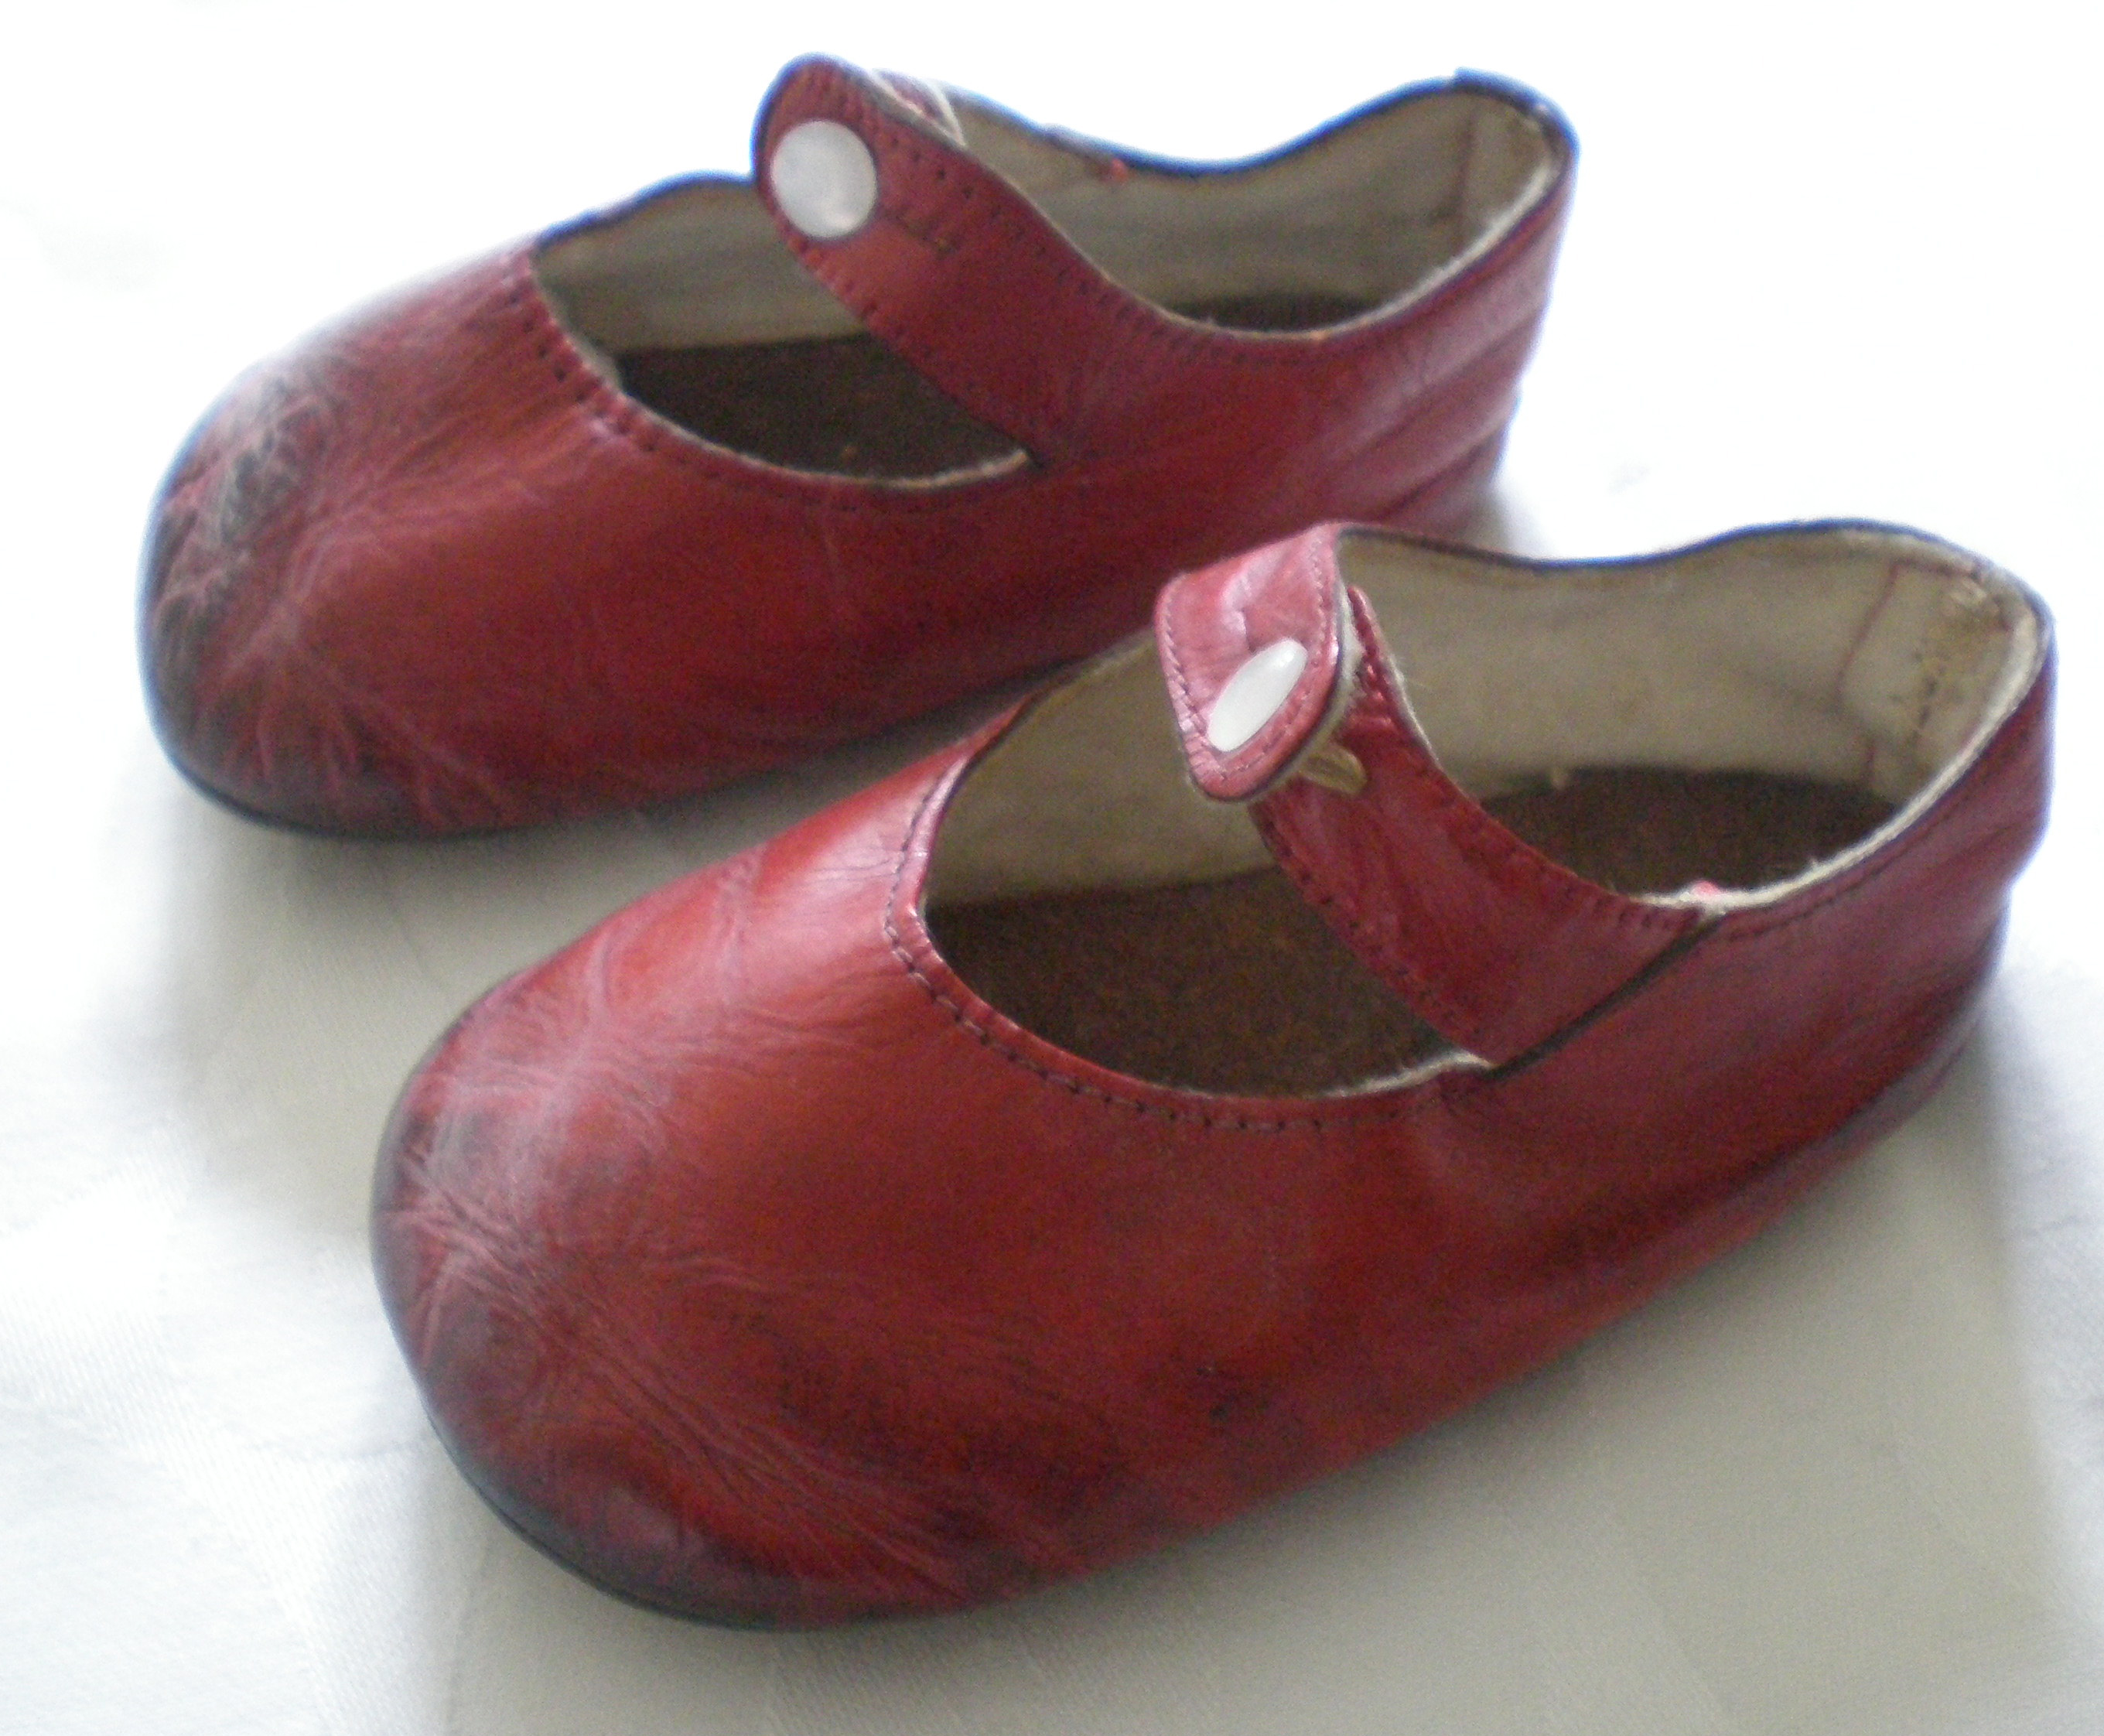 First red shoes